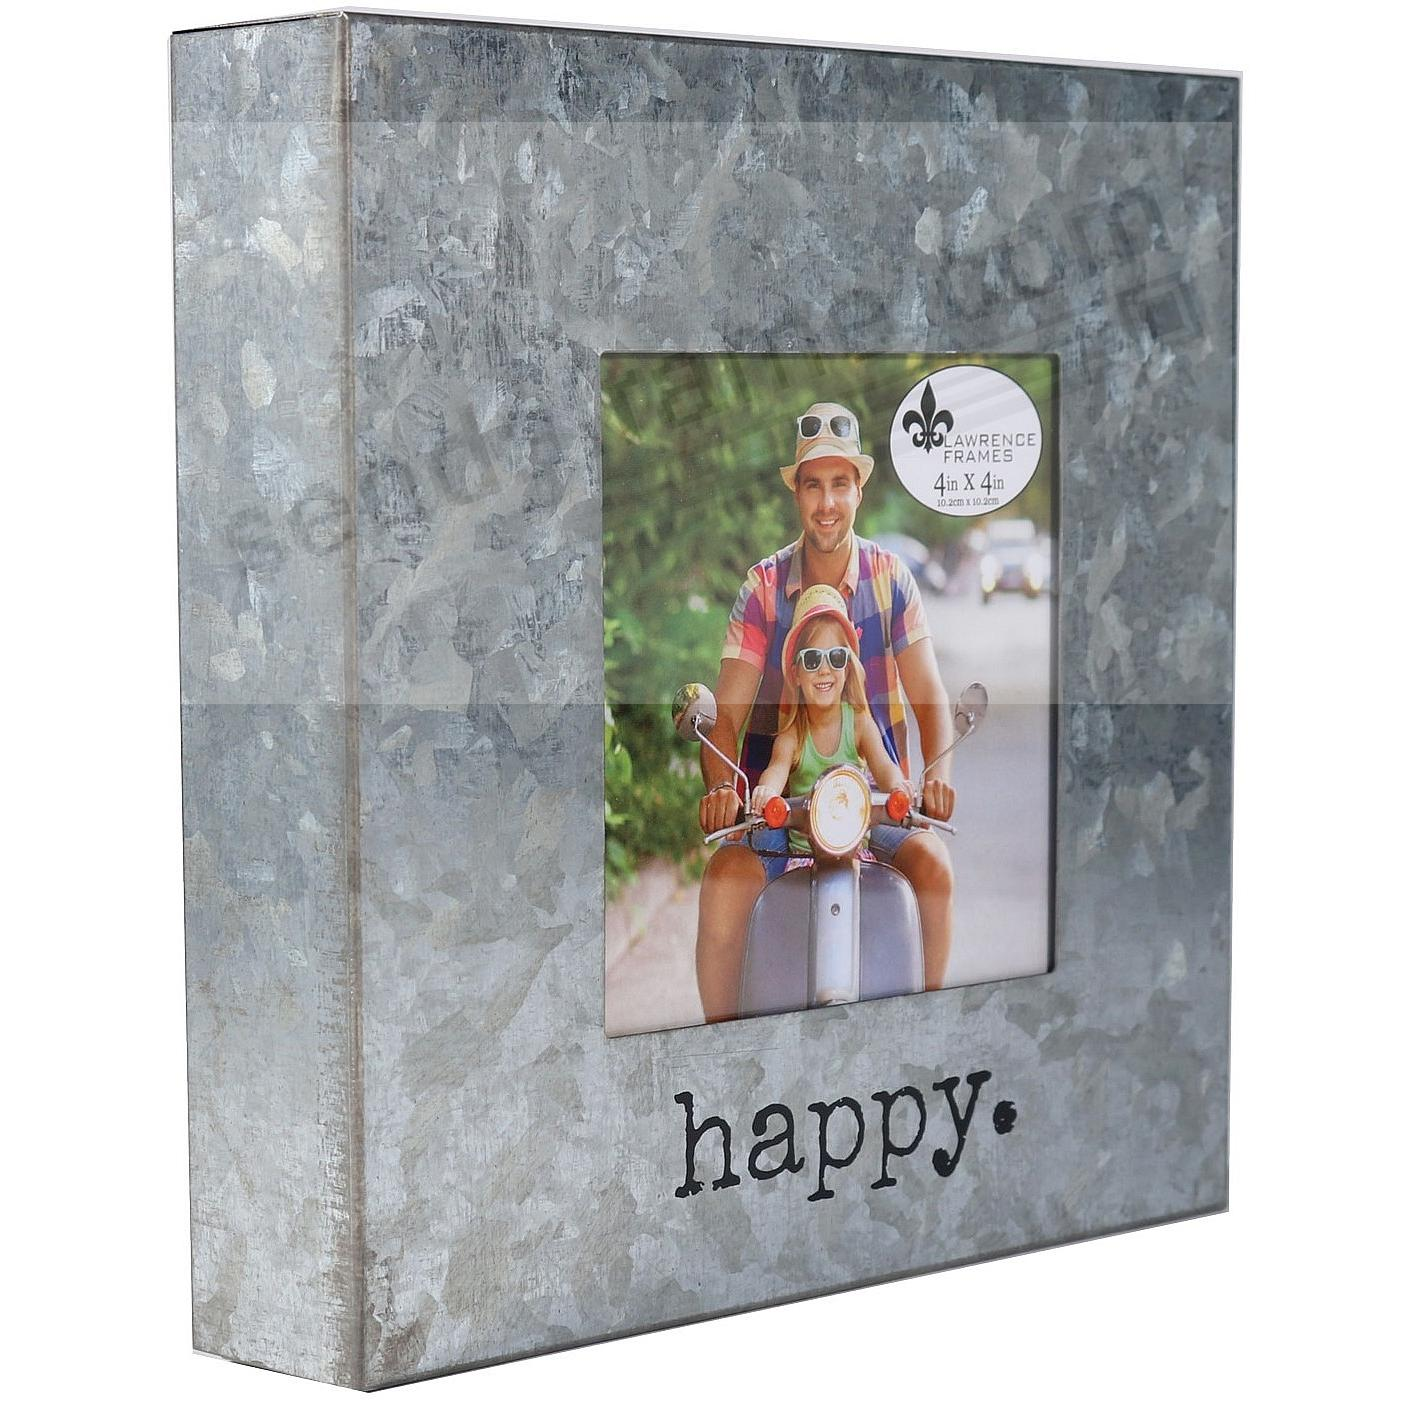 HAPPY Galvanized Metallic 4x4 Block Frame